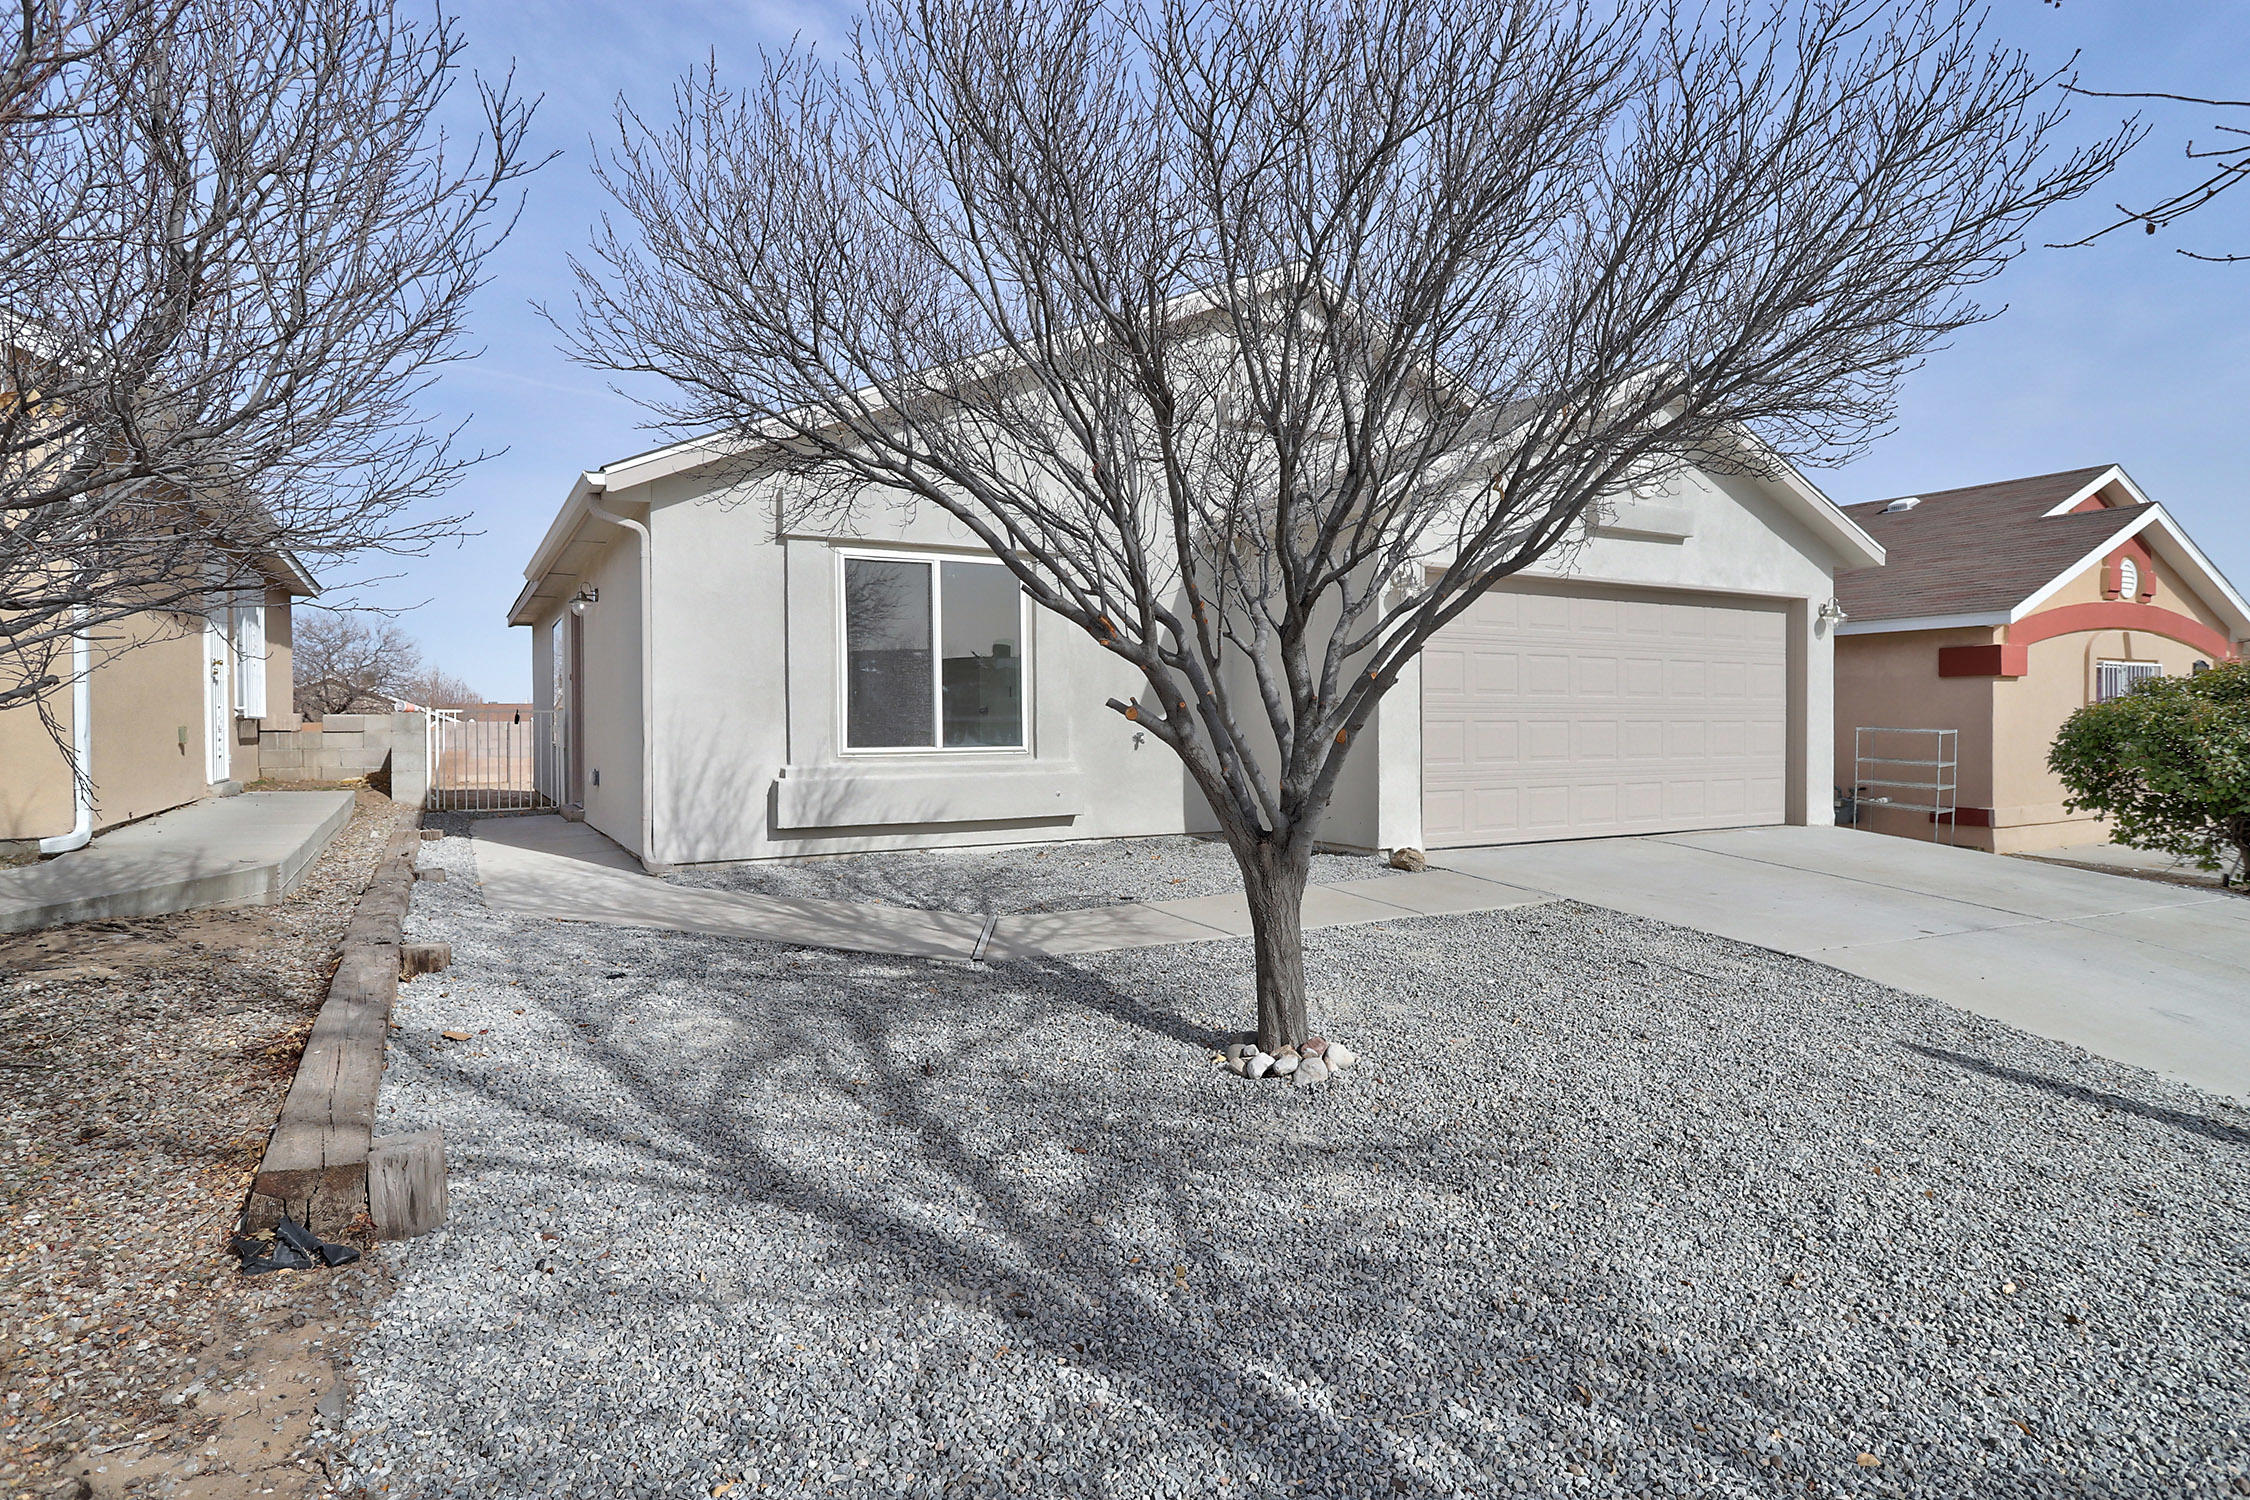 Welcome your new home! This Beautiful Rowe Legacy Next-Gen upgrades include high efficiency refrigerated air and heat, Wi-Fi programmable Nest thermostat, LED lighting, built-in USB port outlets, Frigidaire HE/Energy Star appliances, new flooring, updated cabinets, fresh paint inside and out, and much more! Don't miss out, this one won't last long!